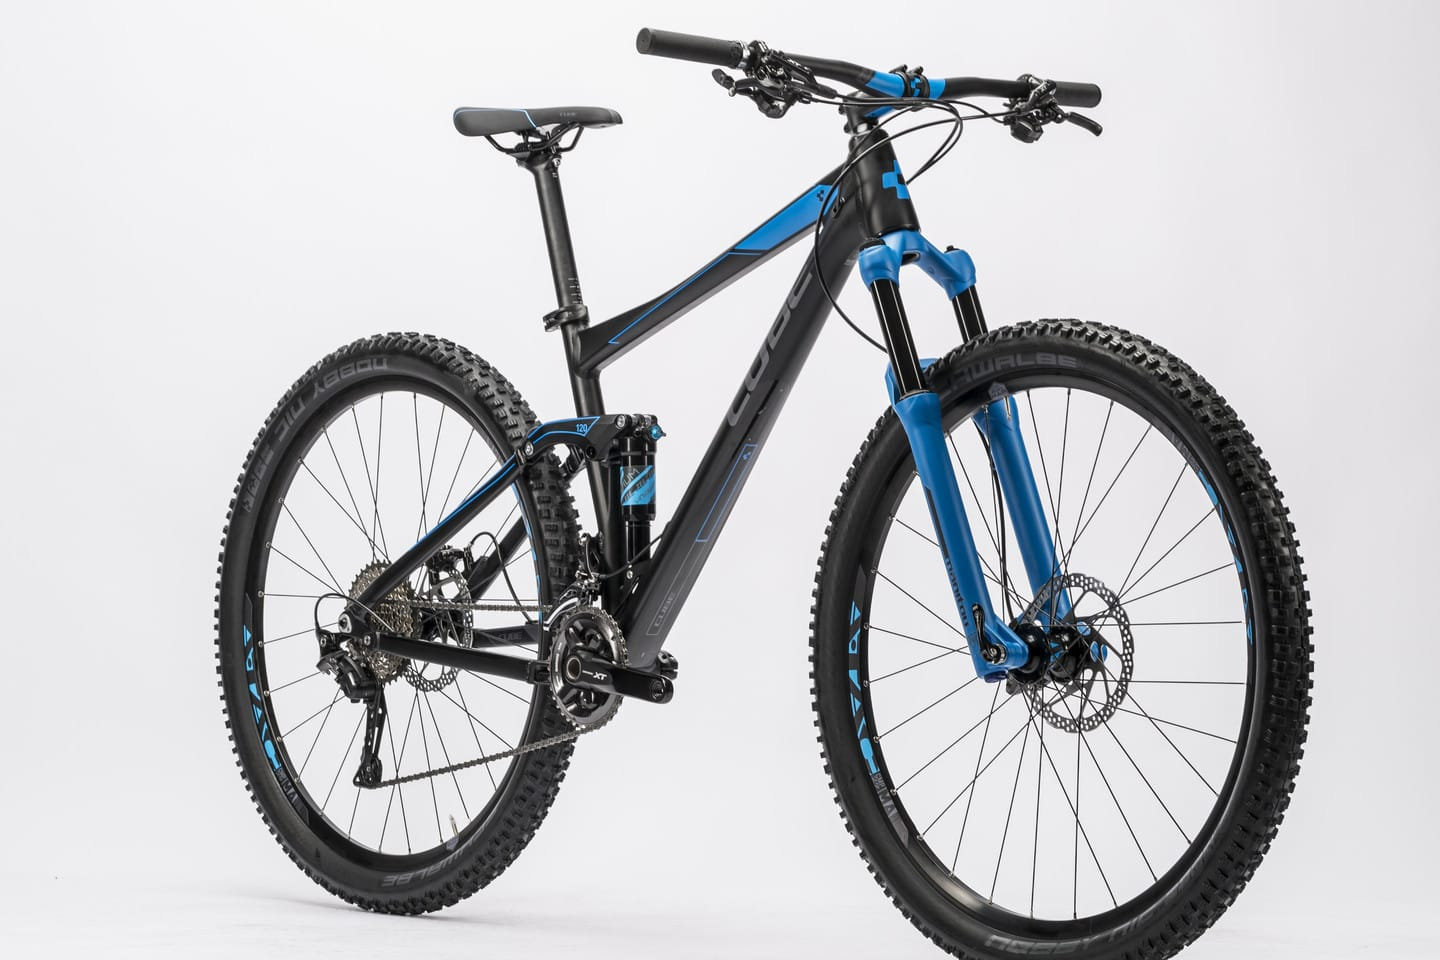 cube stereo 120 hpa race 29 fs mtb bike 2016 all terrain cycles. Black Bedroom Furniture Sets. Home Design Ideas